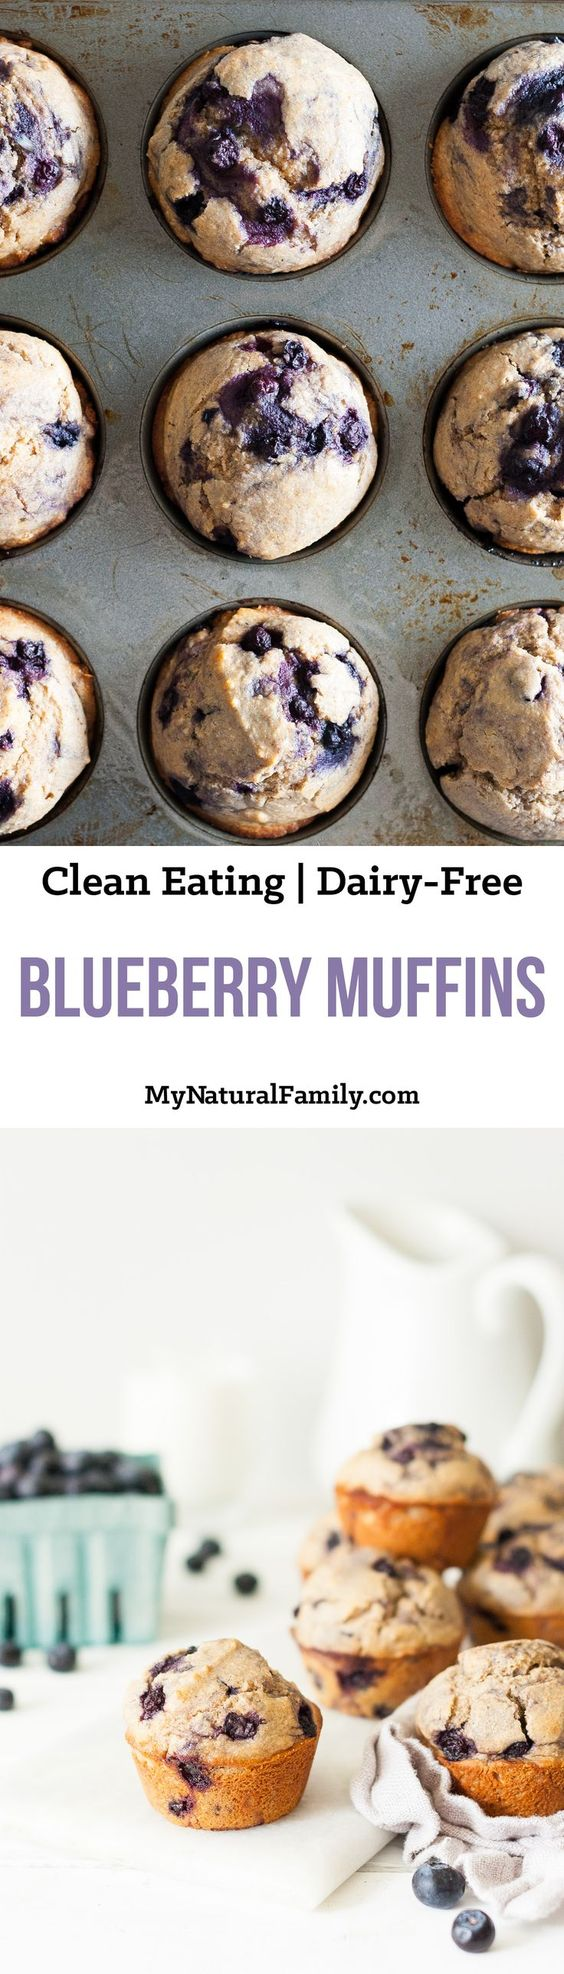 Blueberry Muffins Recipe {Clean Eating, Dairy-Free}